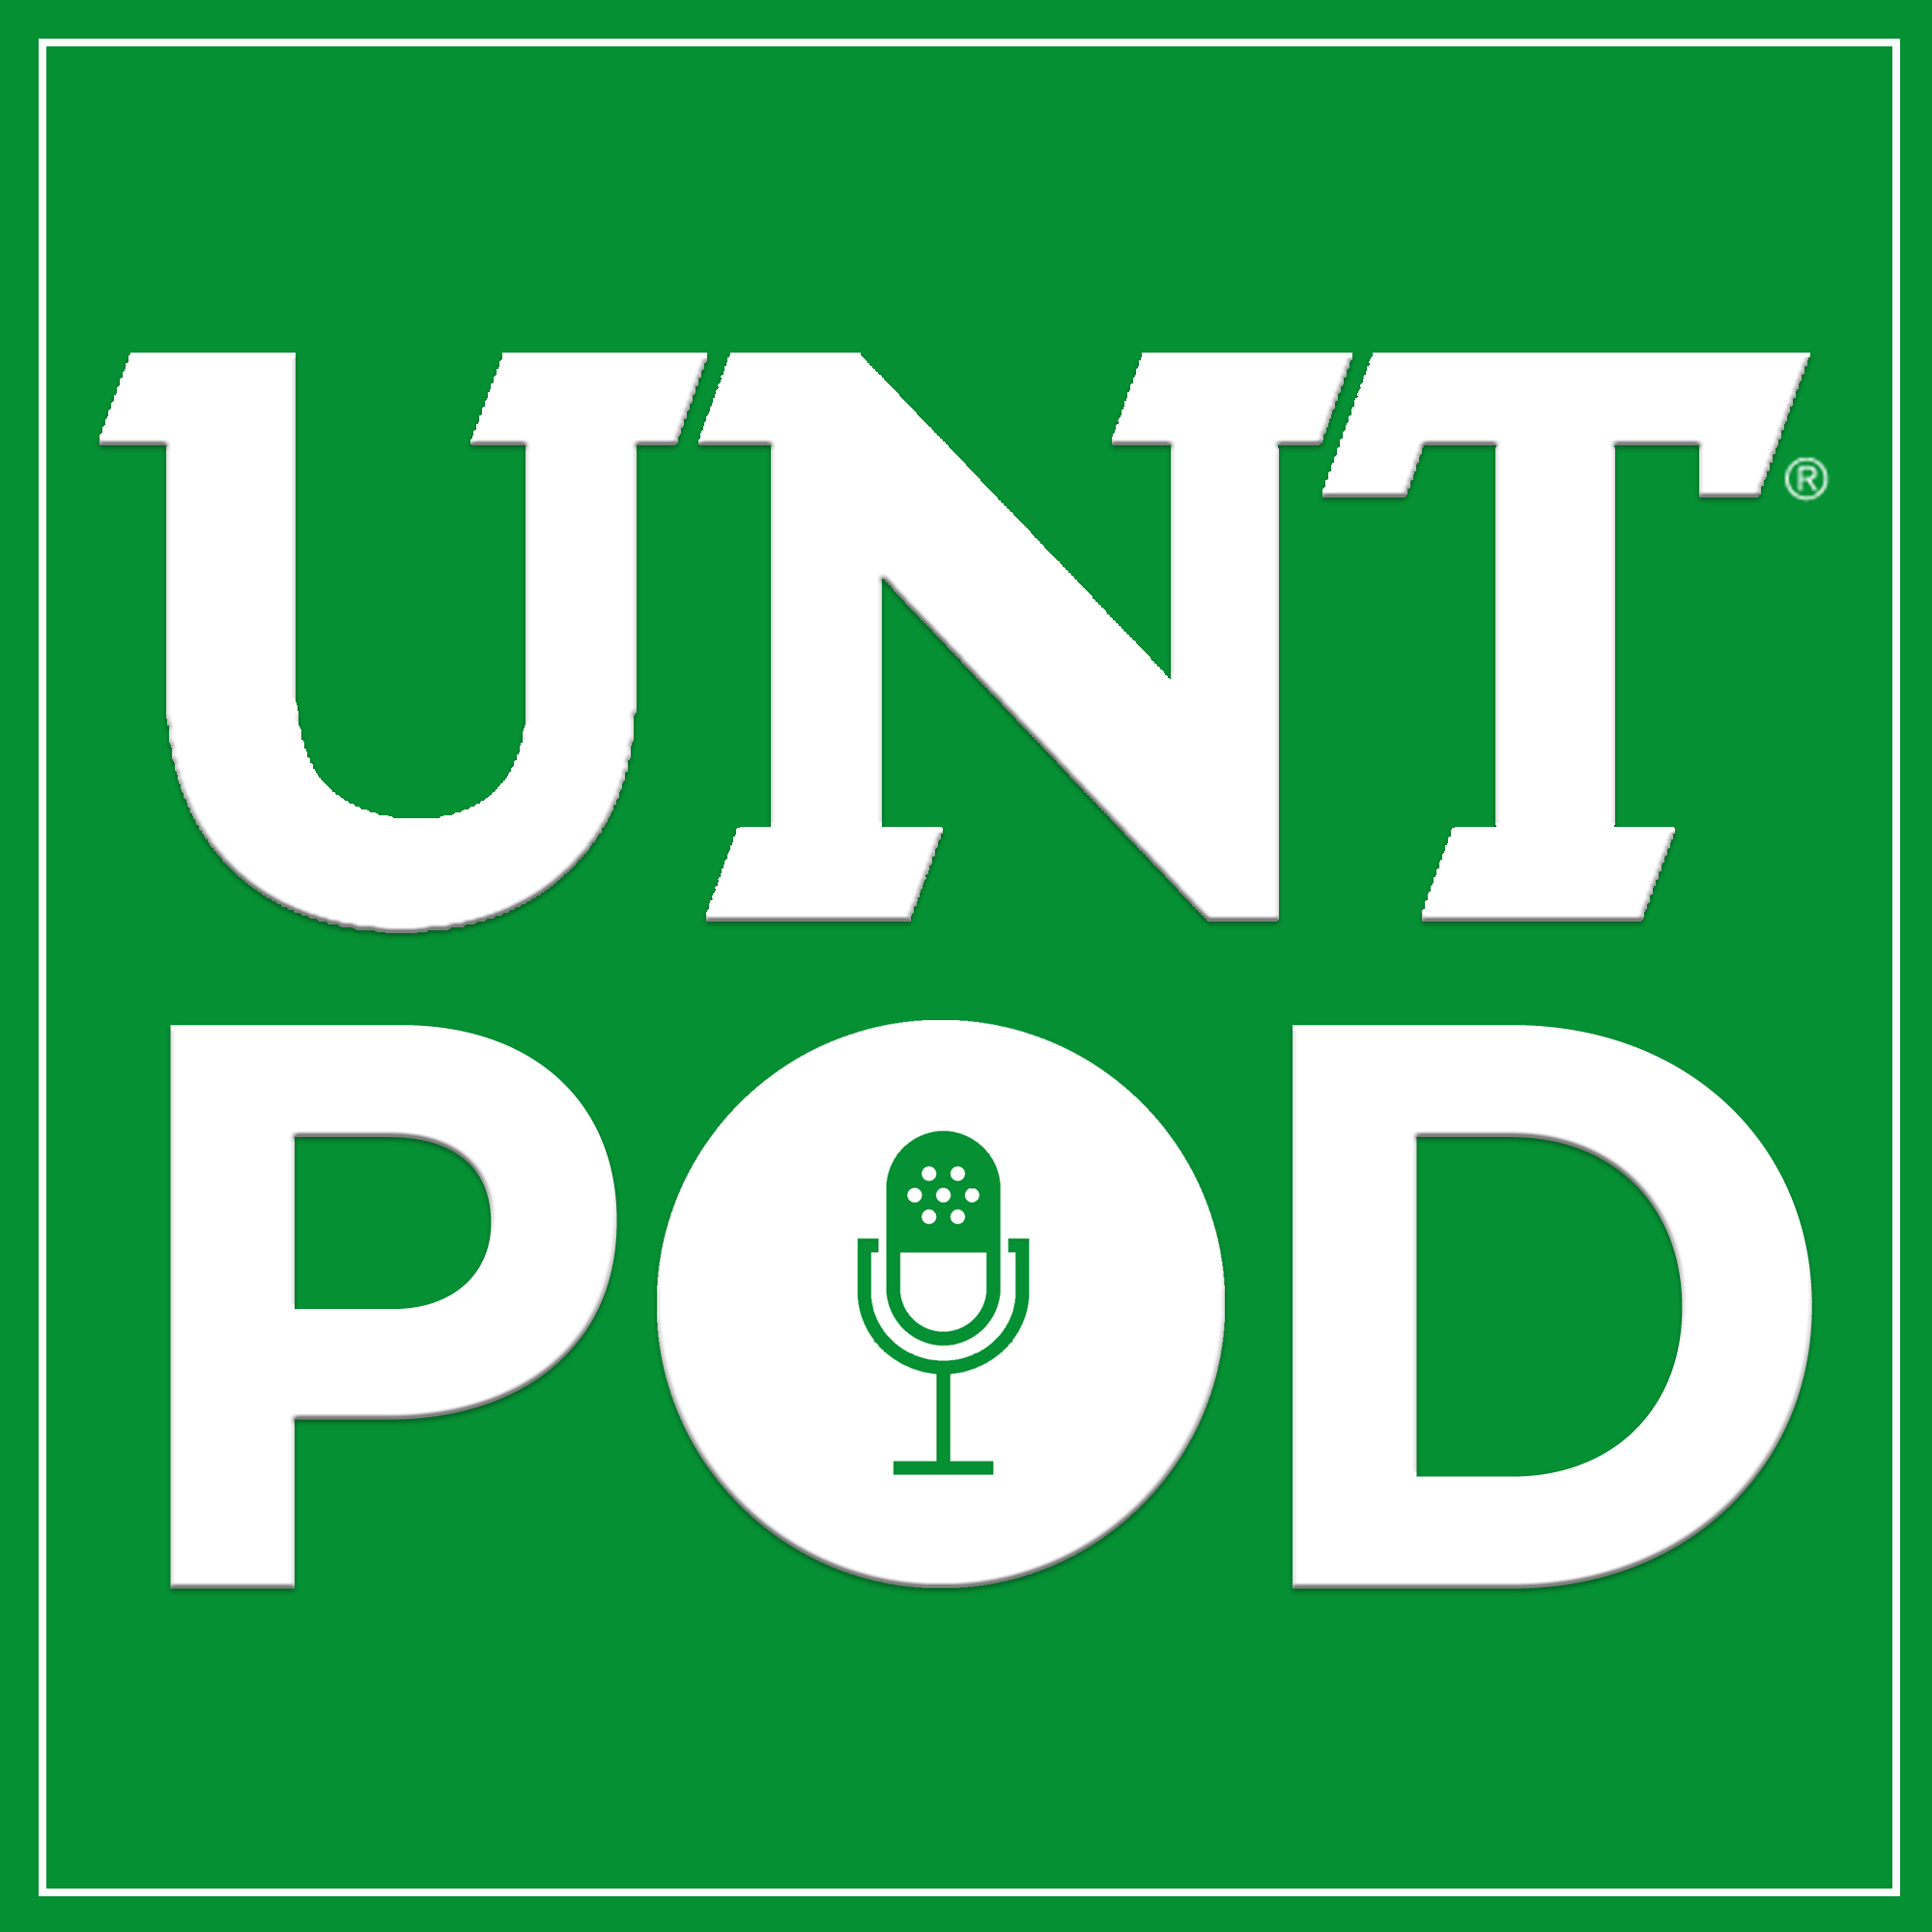 UNT POD: Faculty experts, students weigh in on Game of Thrones for new UNT podcast